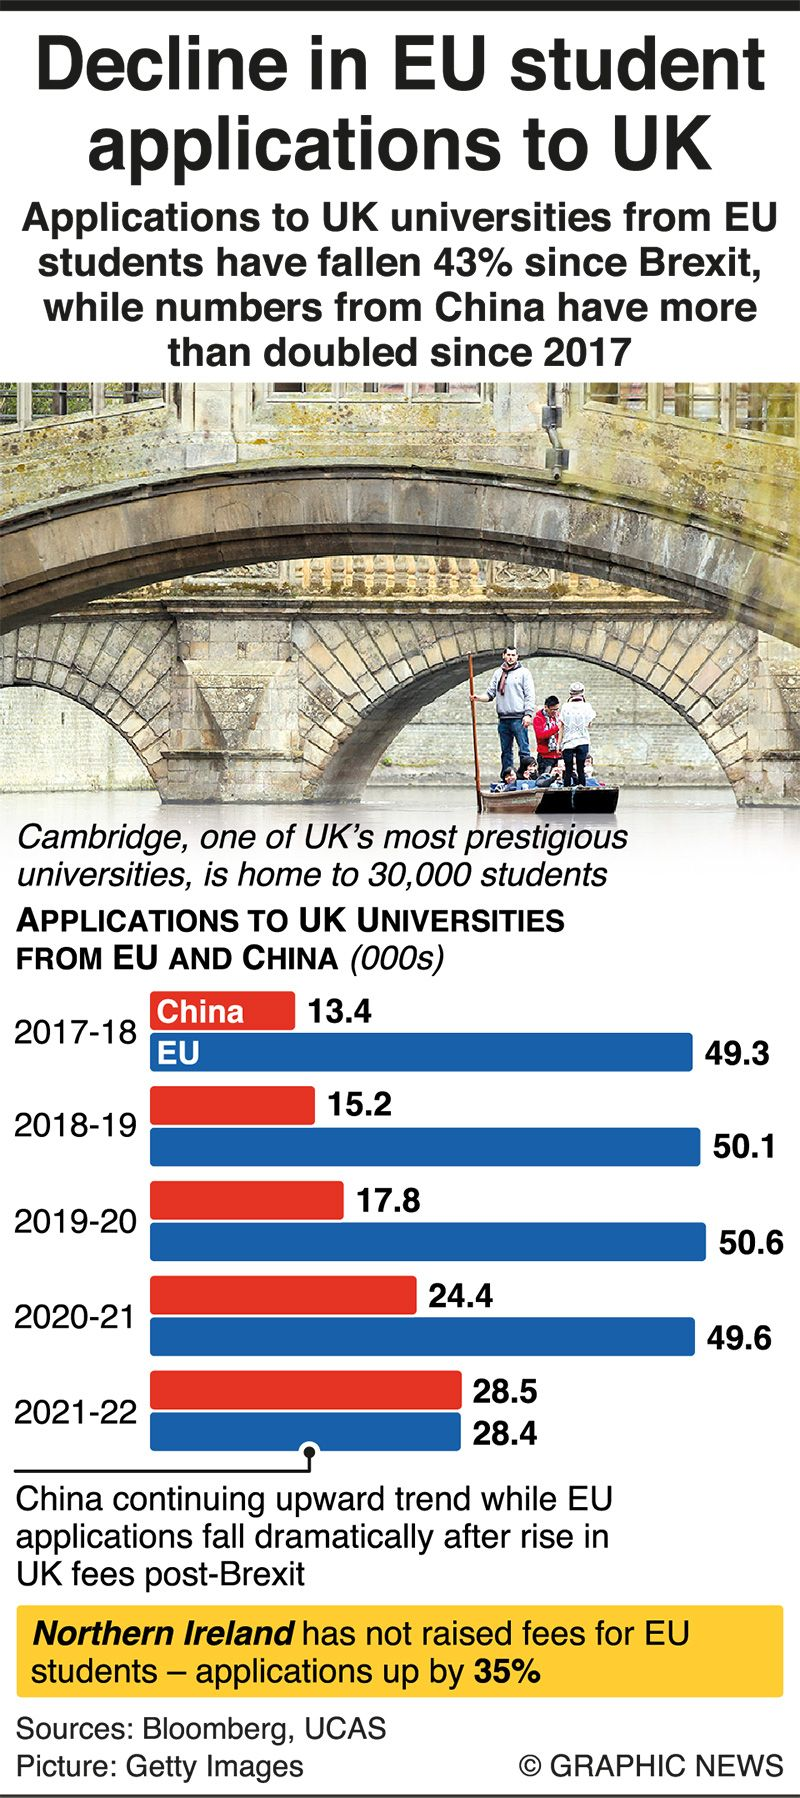 China overtakes EU student applications to UK after Brexit